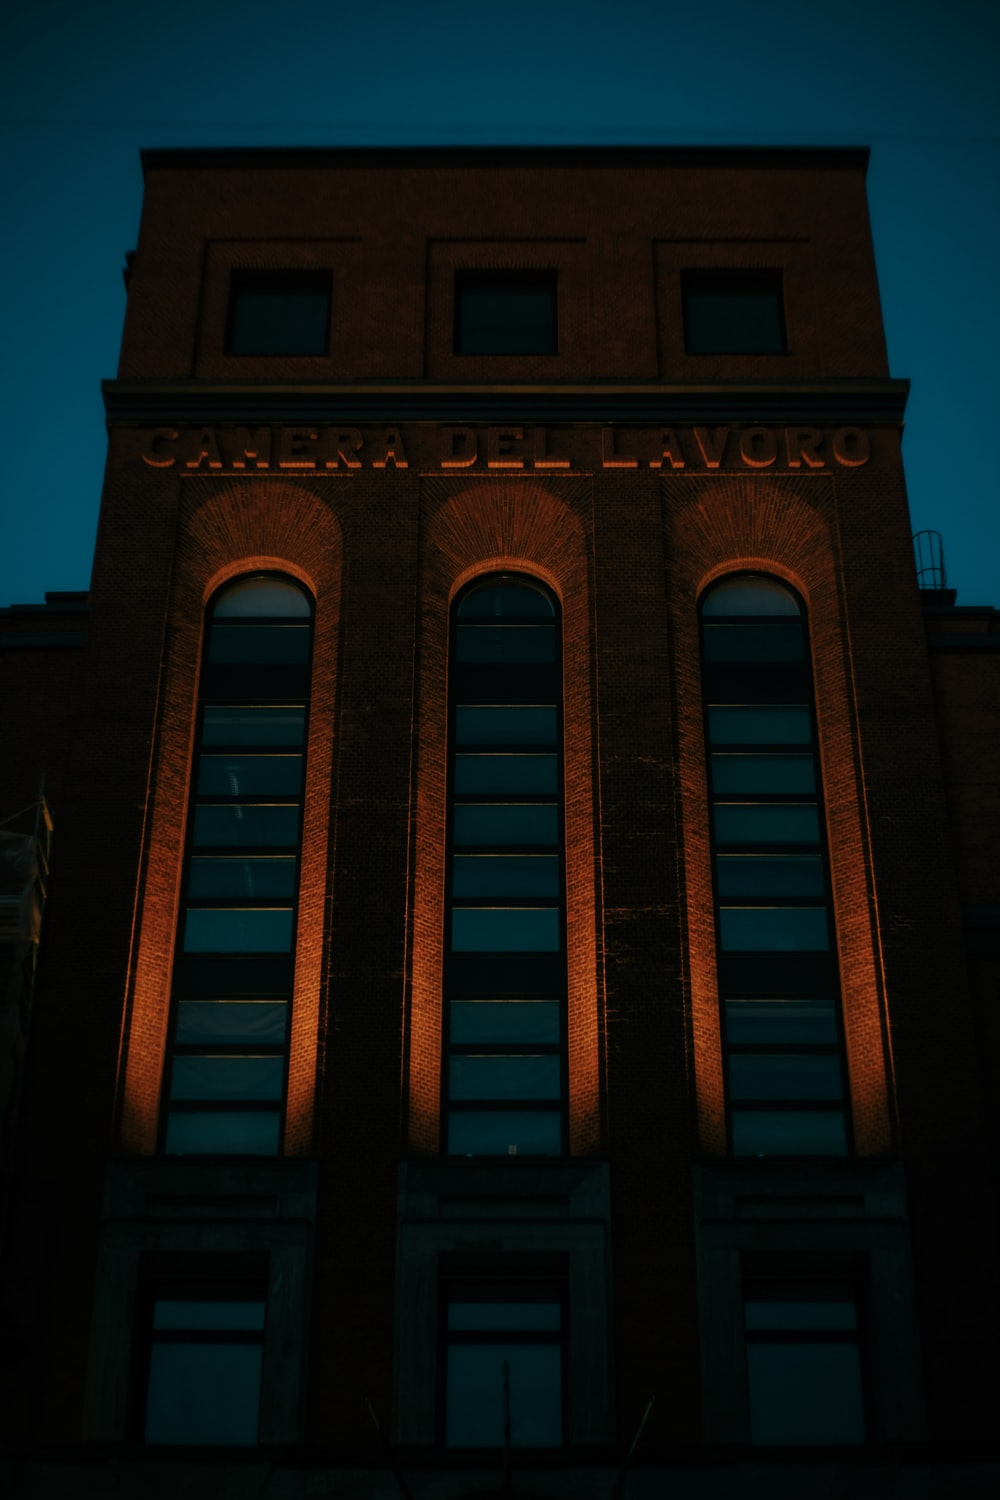 close-up photography of brown building during nighttime